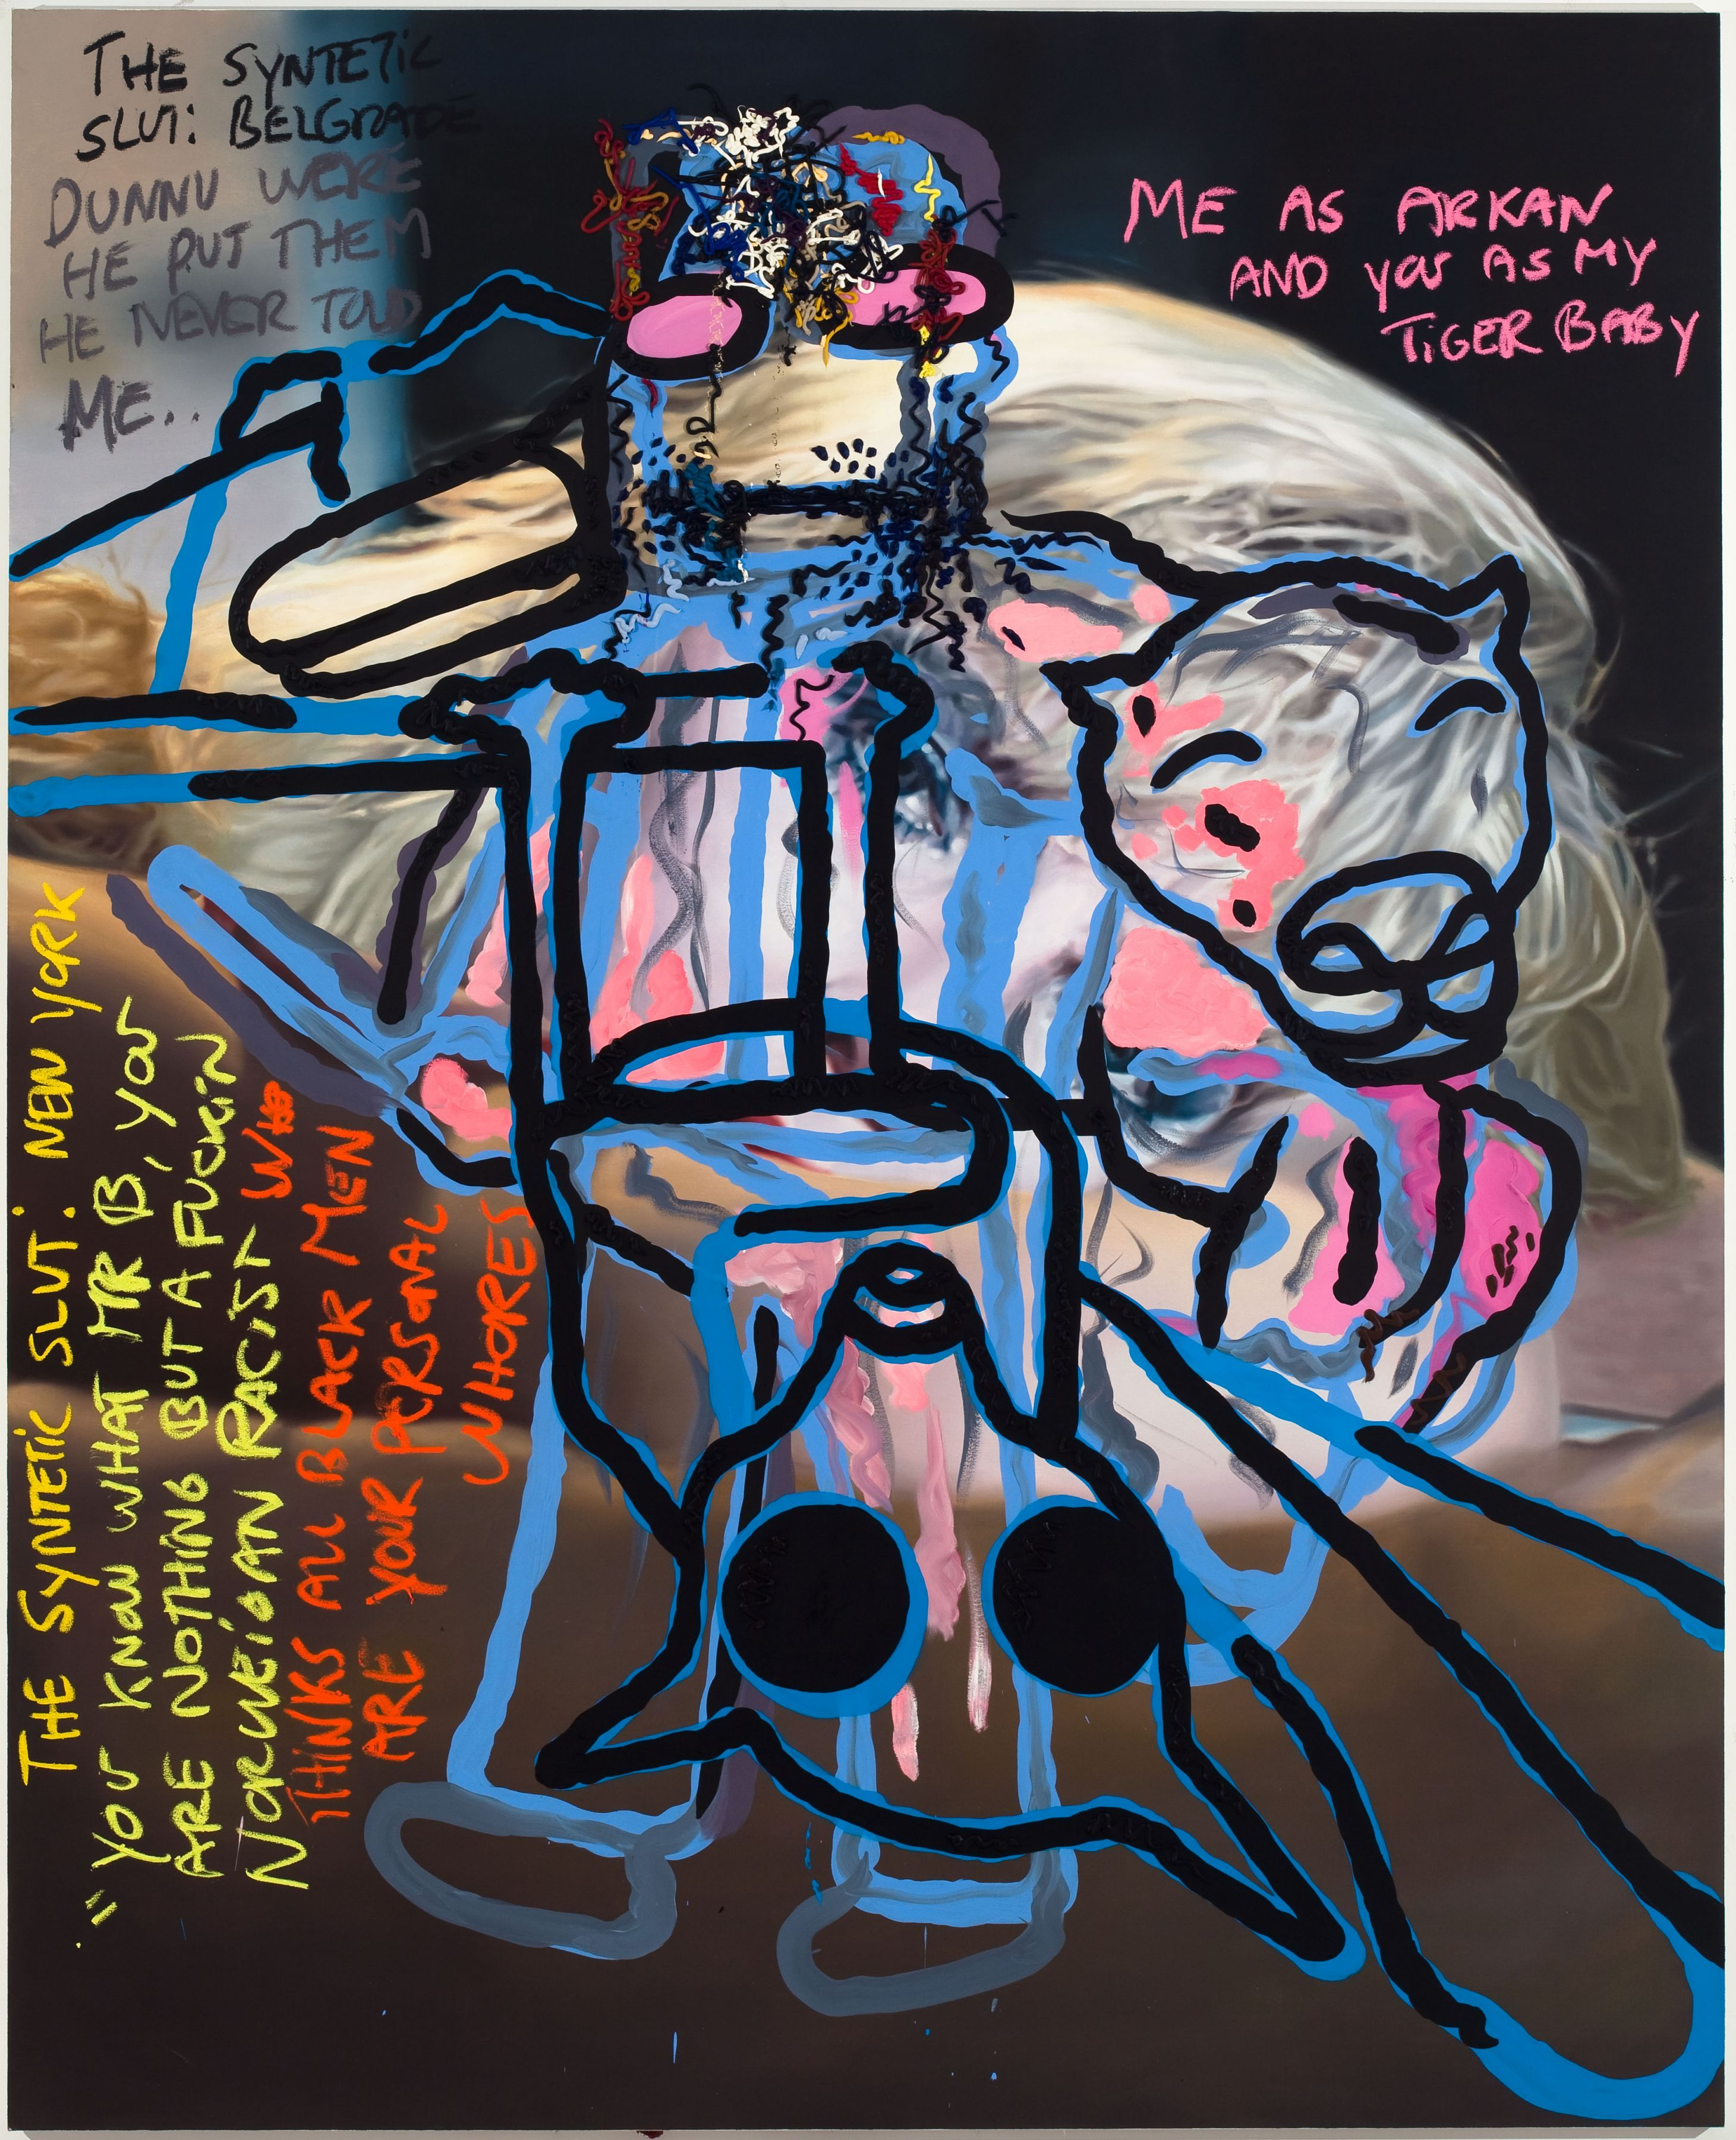 Bjarne Melgaard, Untitled, 2010, oil on canvas, 110.25 x 89 x 2 inches